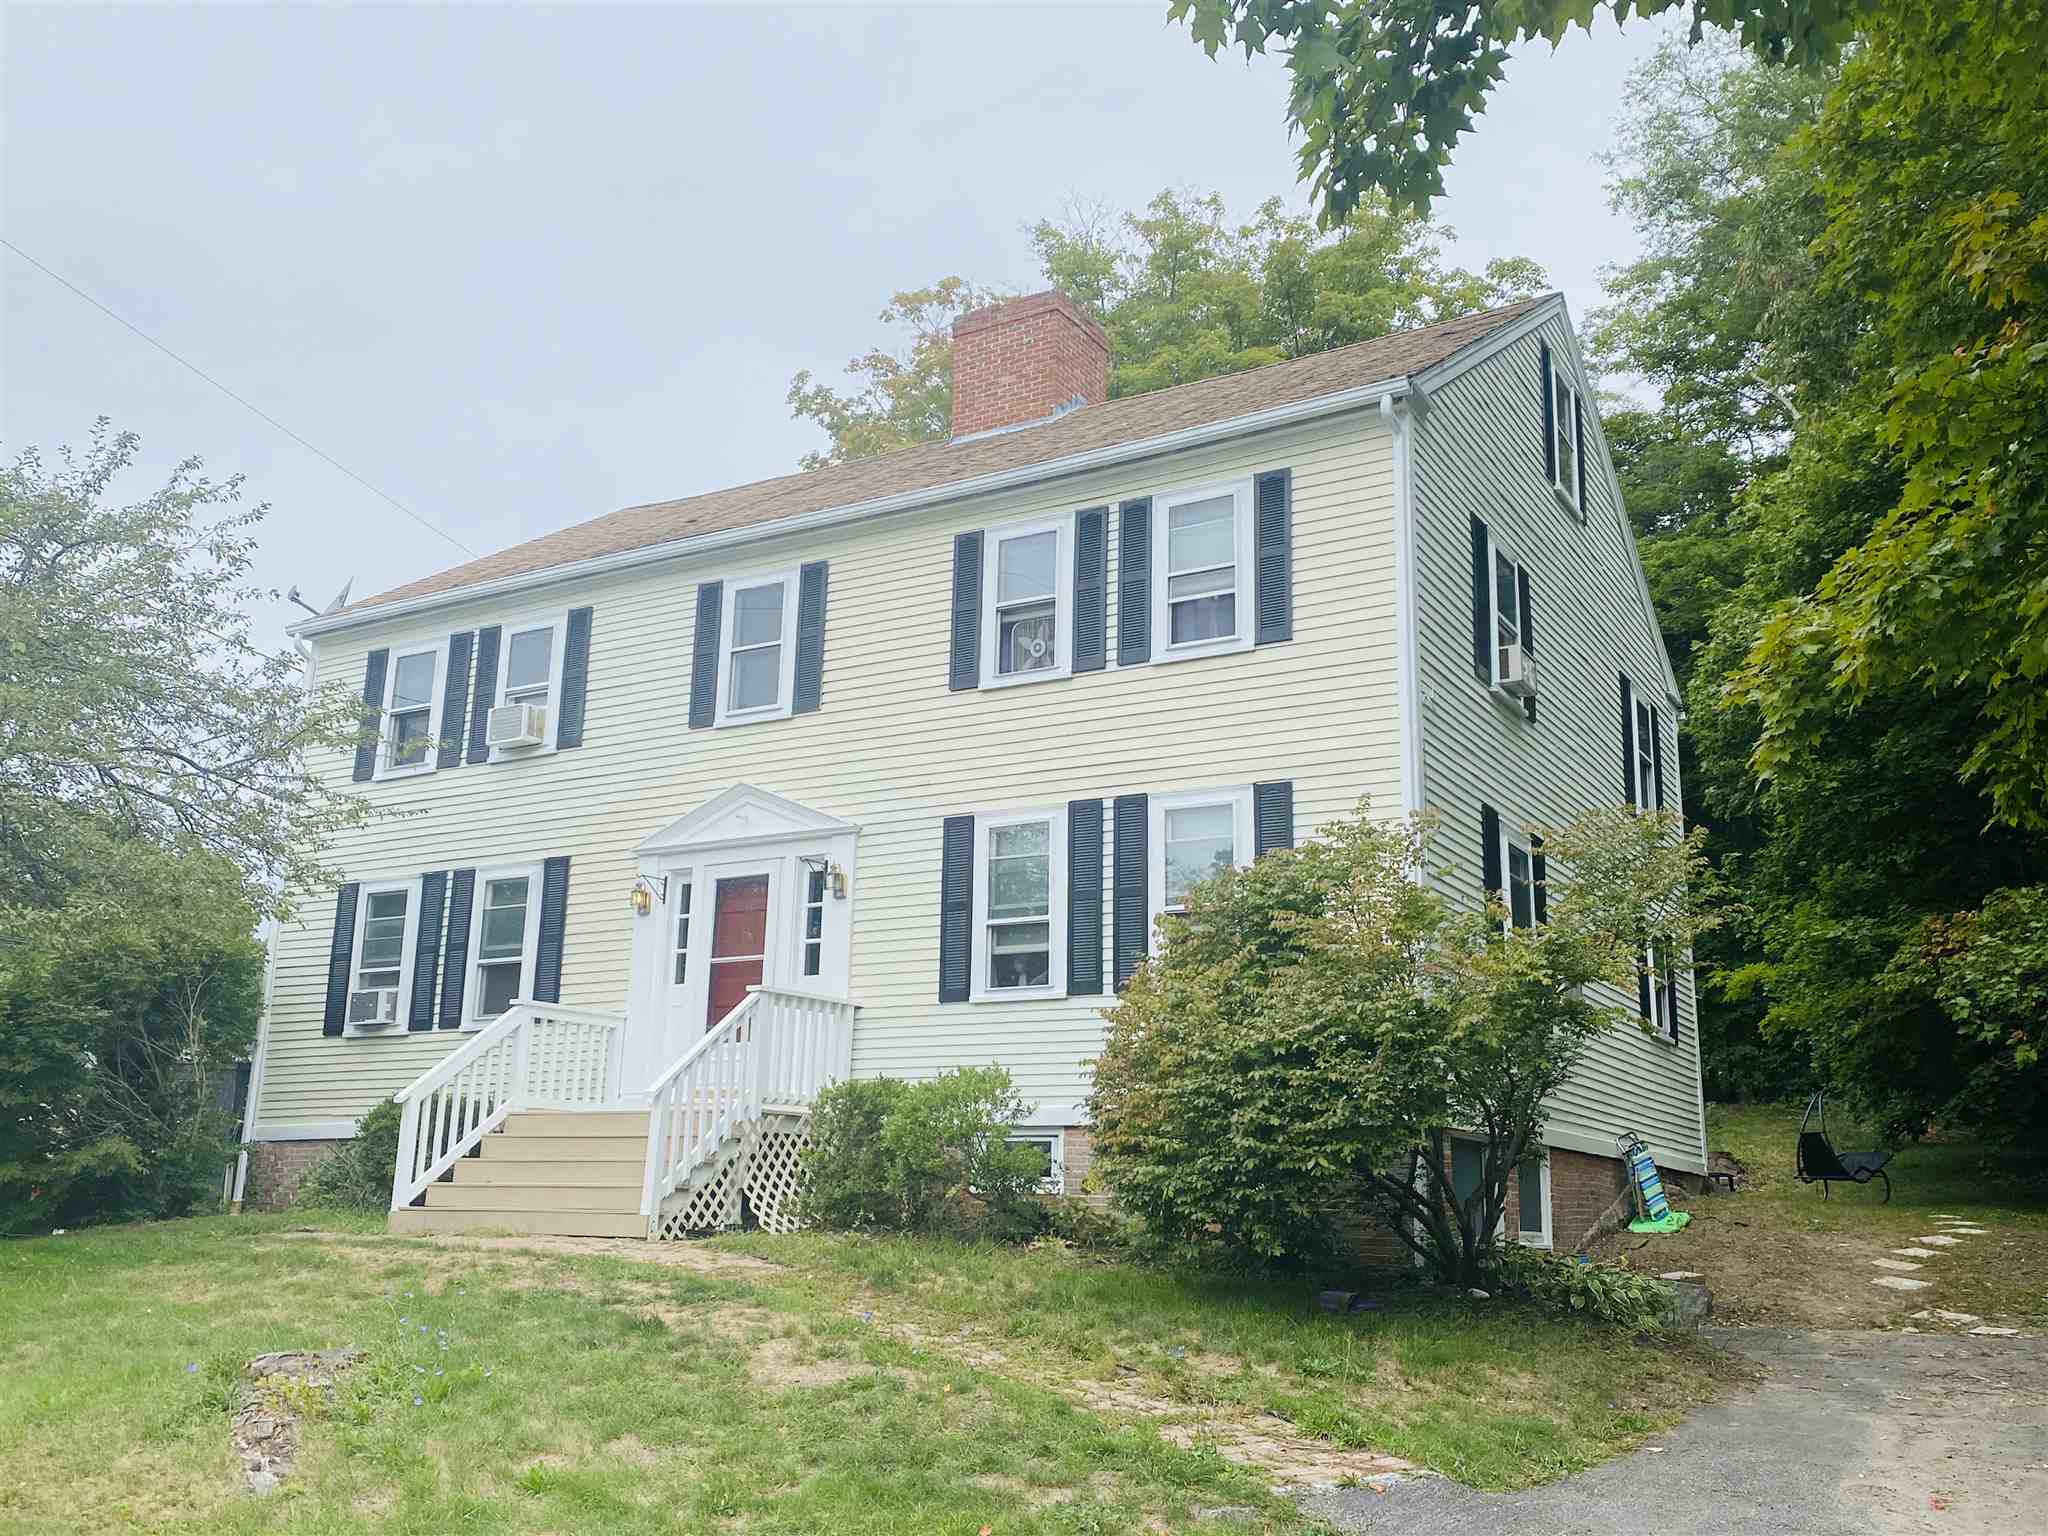 Photo of 18 Water Street Epping NH 03042